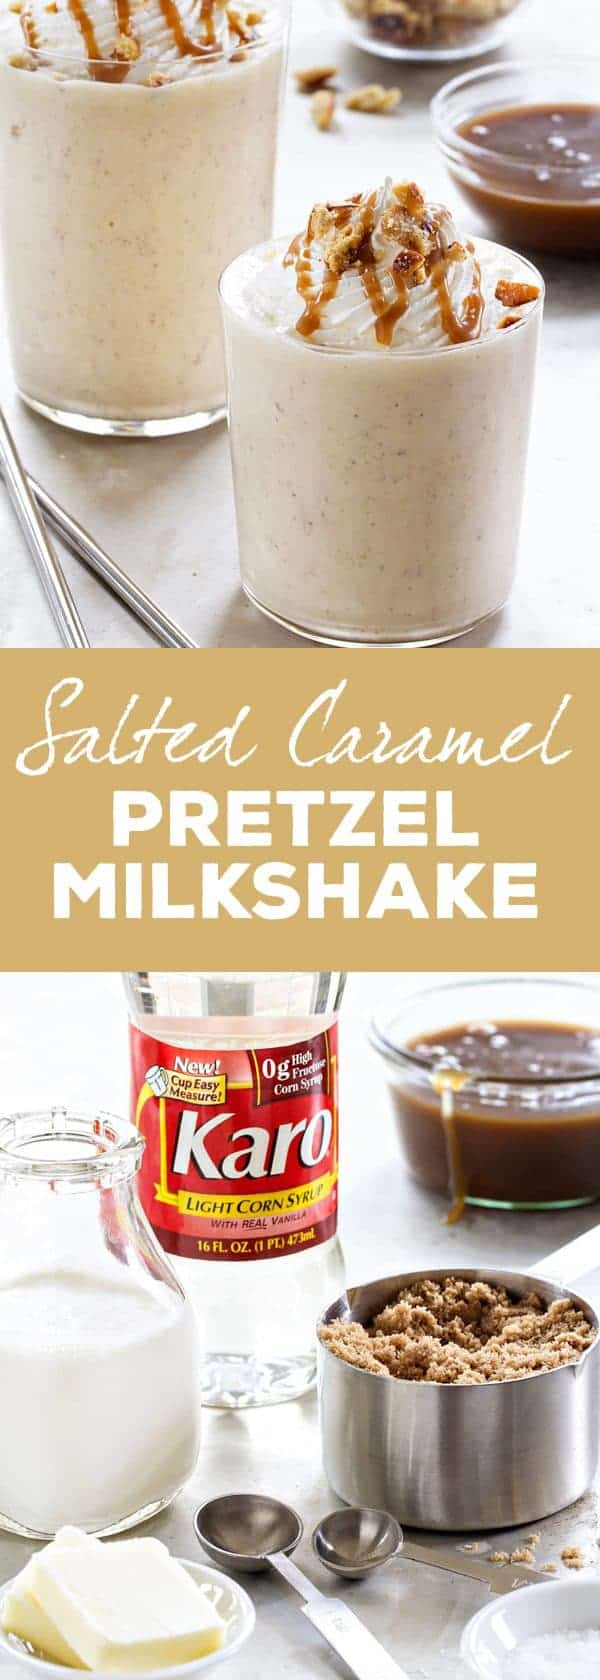 A Salted Caramel Pretzel Milkshake to cool you off and sweeten you up! This delicious dessert whips up quickly for a crowd, making it perfect for barbecues or a Memorial Day party. So delish!